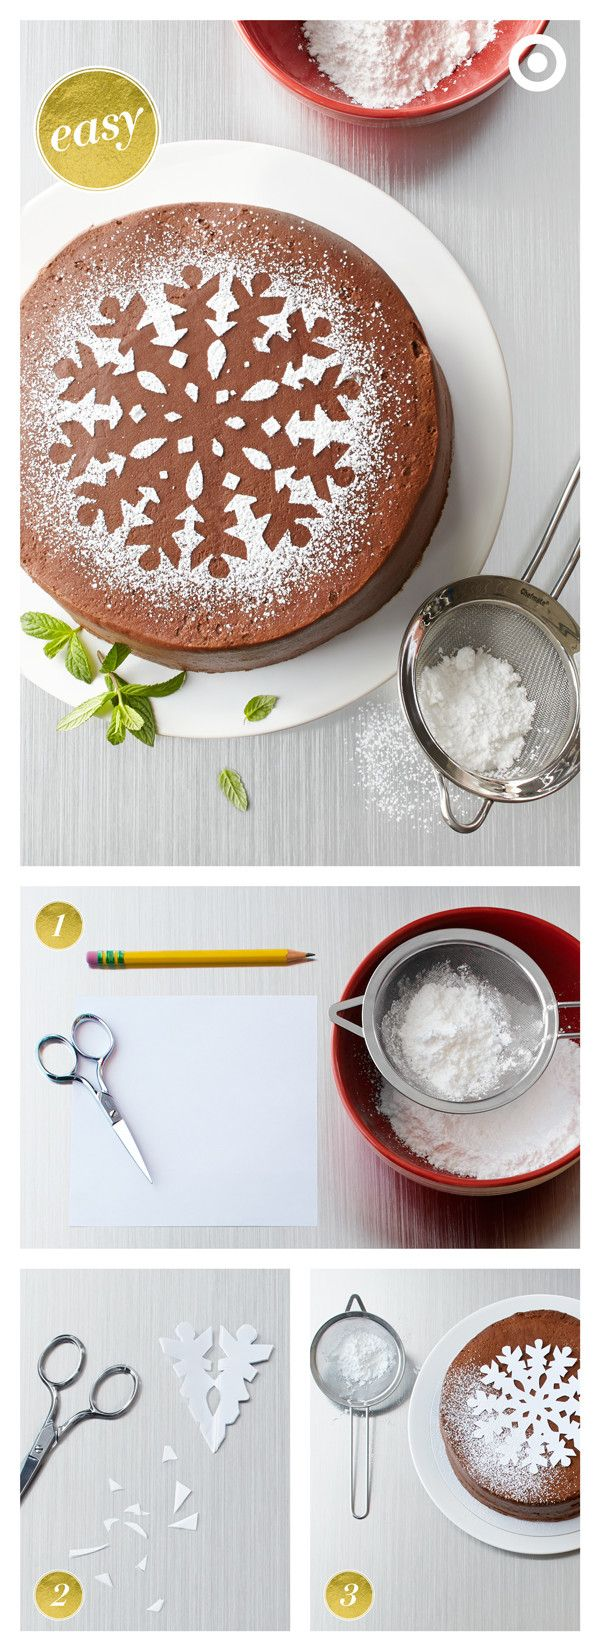 This holiday dessert looks great and it's ridiculously fast and easy to make. Pick up a frosted chocolate cake from the Bakery. Dress it up by cutting out a stencil, placing it on the cake, and then sifting powdered sugar over the top. Carefully lift off the stencil…and voilà! Chic and almost too pretty to eat.